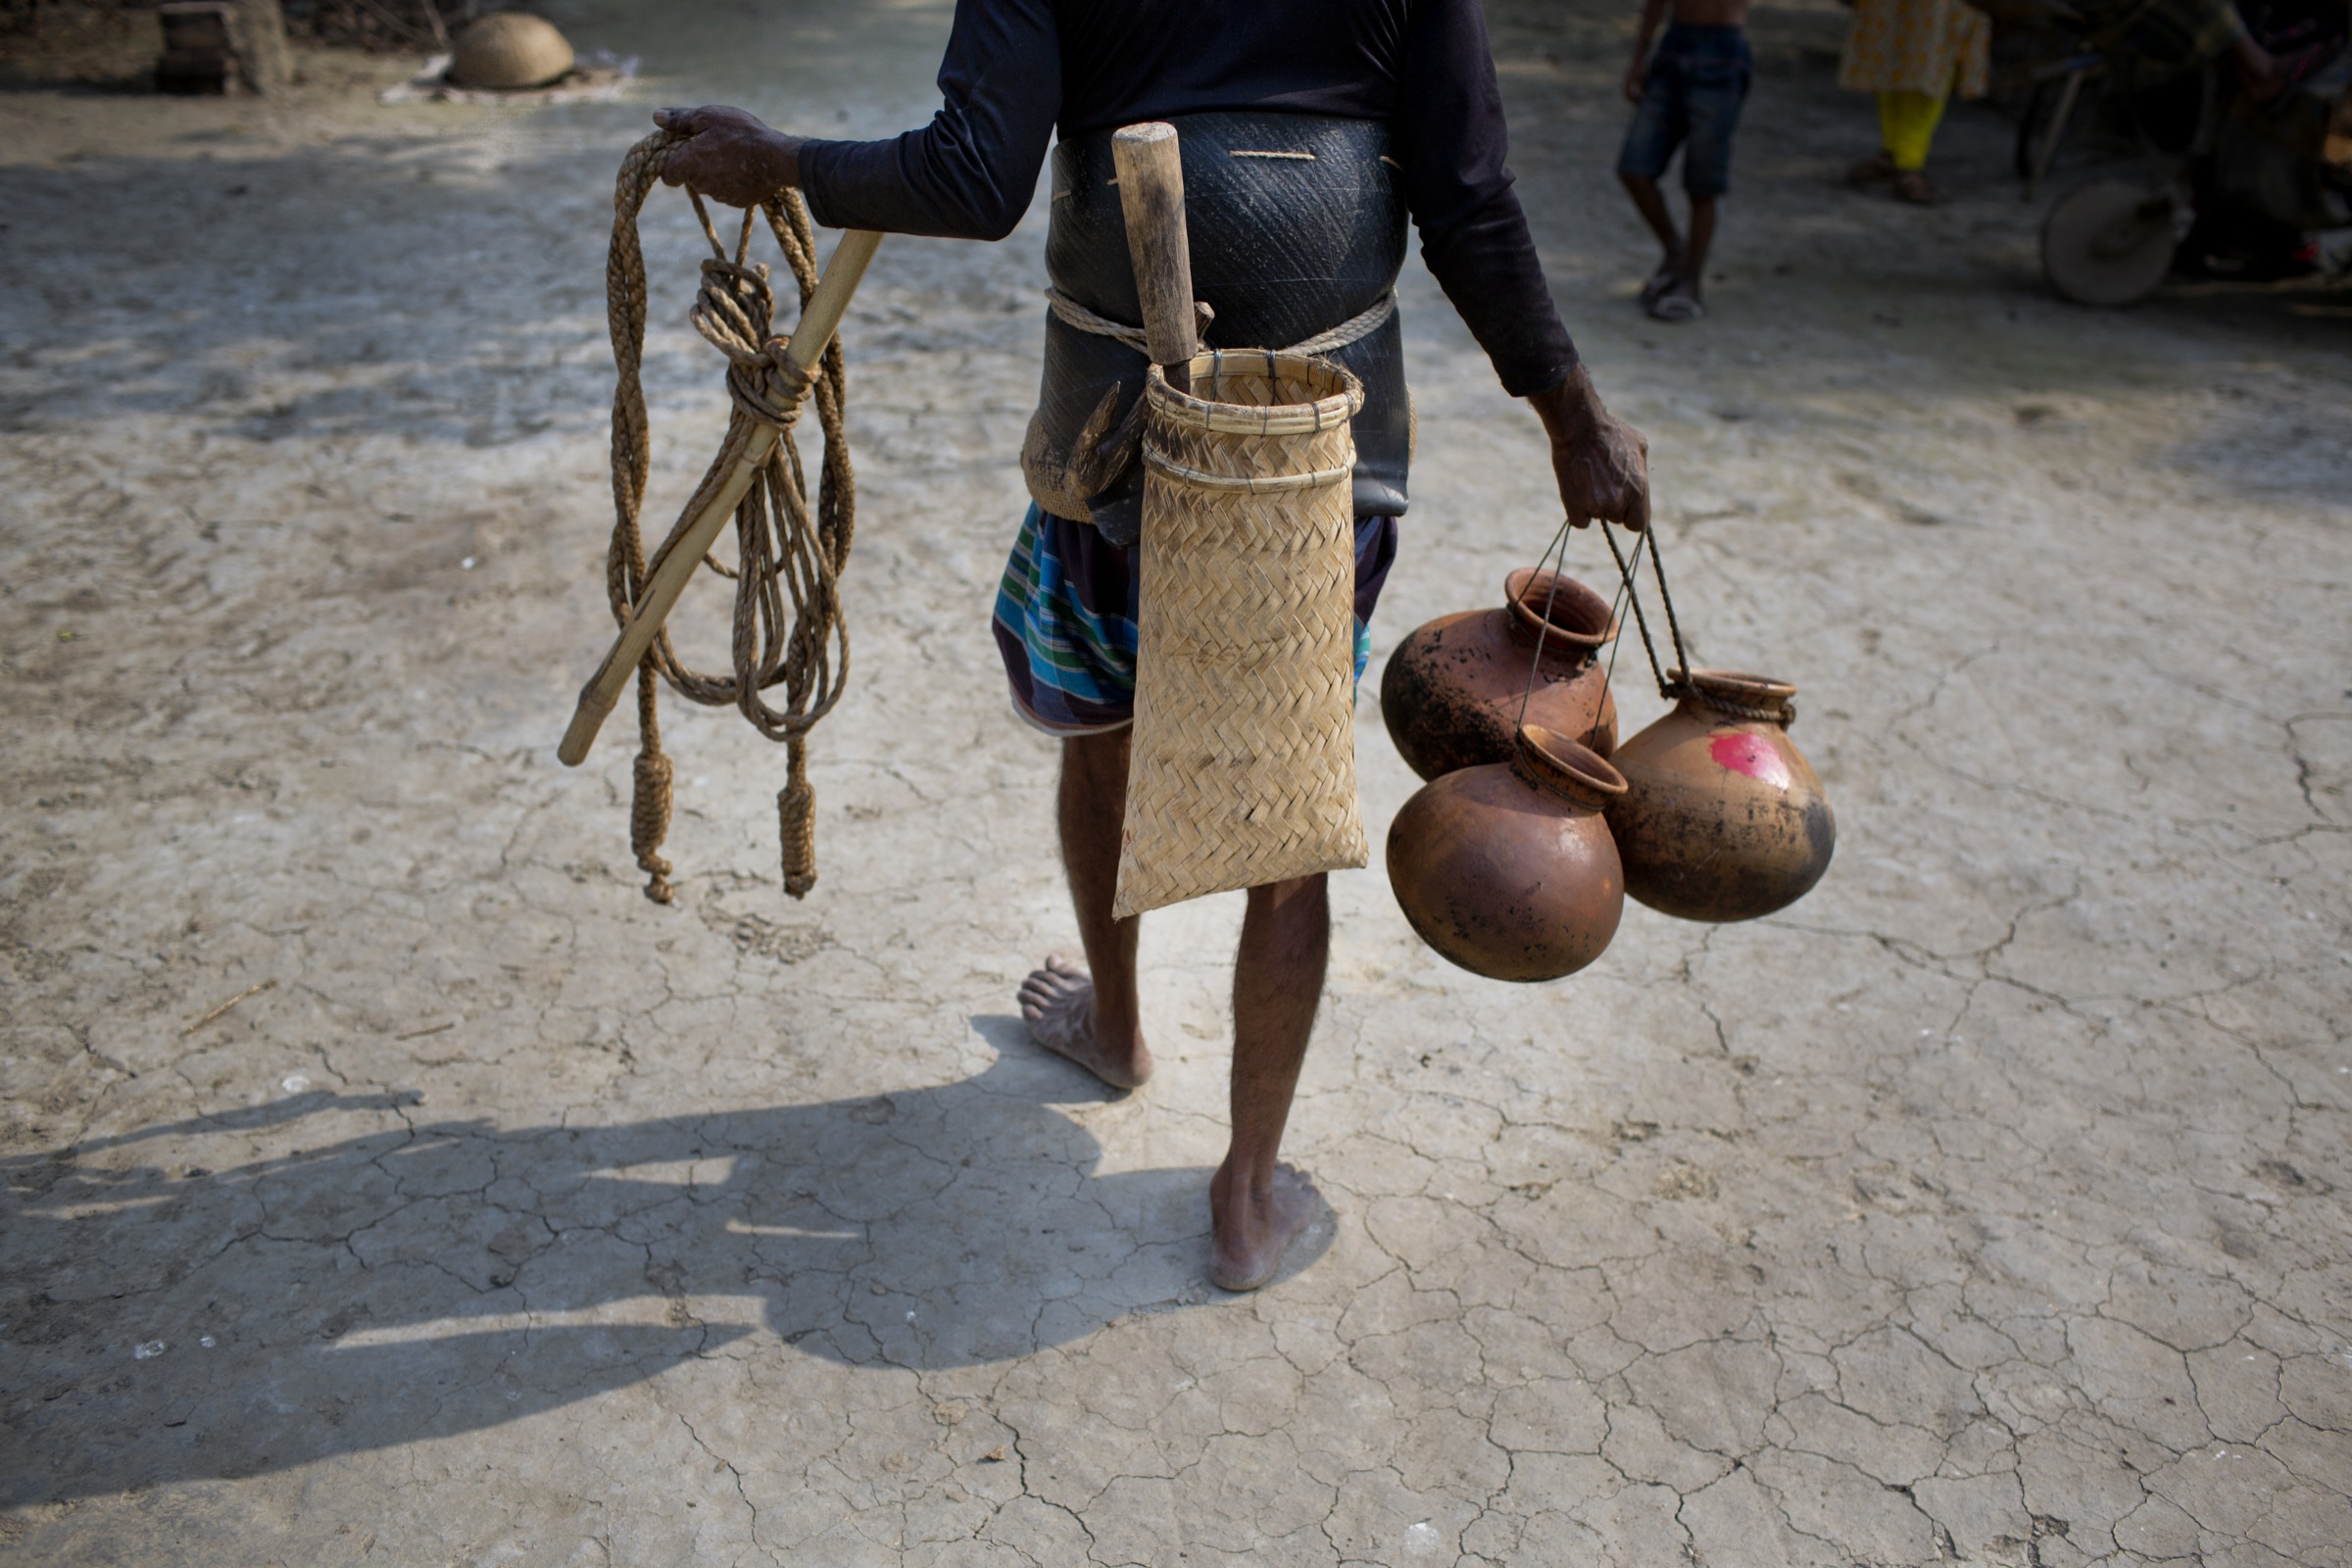 With his tools of the trade, a <em>gachhi</em> goes off to climb and tap date palm trees for the sap that he hopes to sell to excited locals the very next day. Photograph by A.M. Ahad